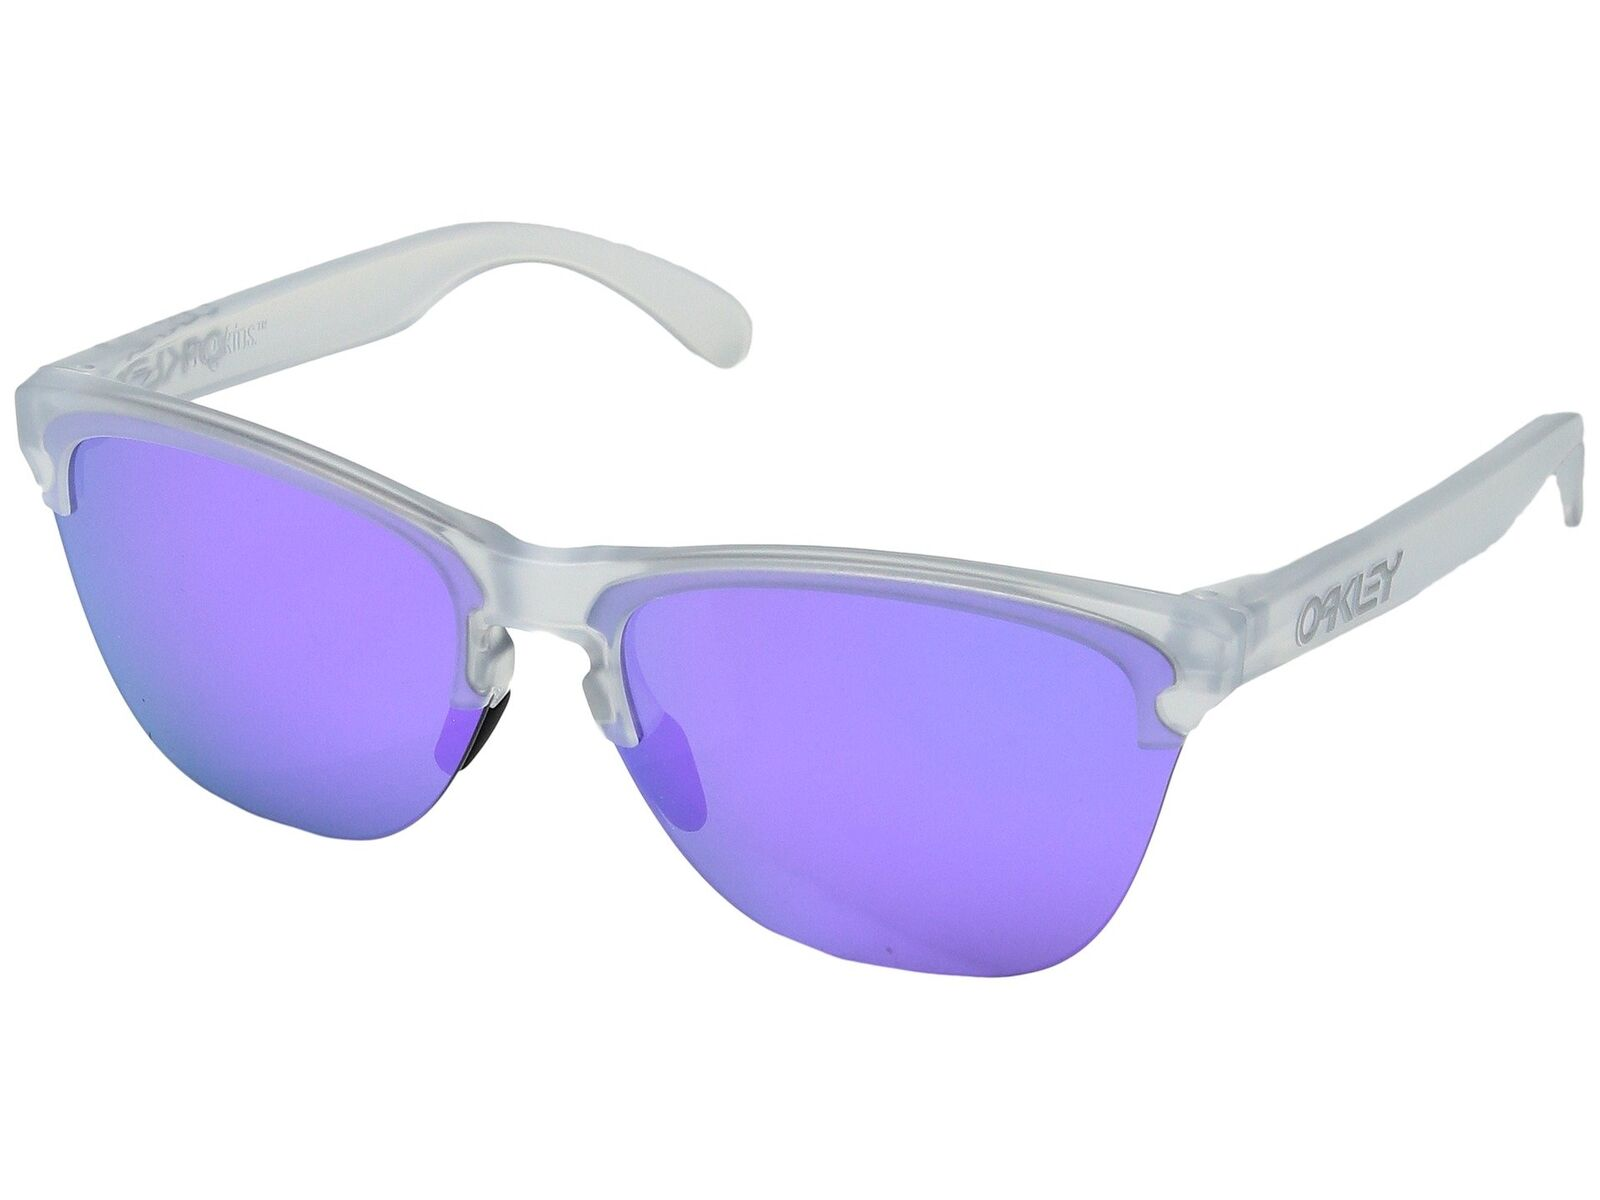 f3e19b6944 Oakley Frogskins Light OO9374-03 Sunglasses Matte Clear Violet Iridium 9374  03